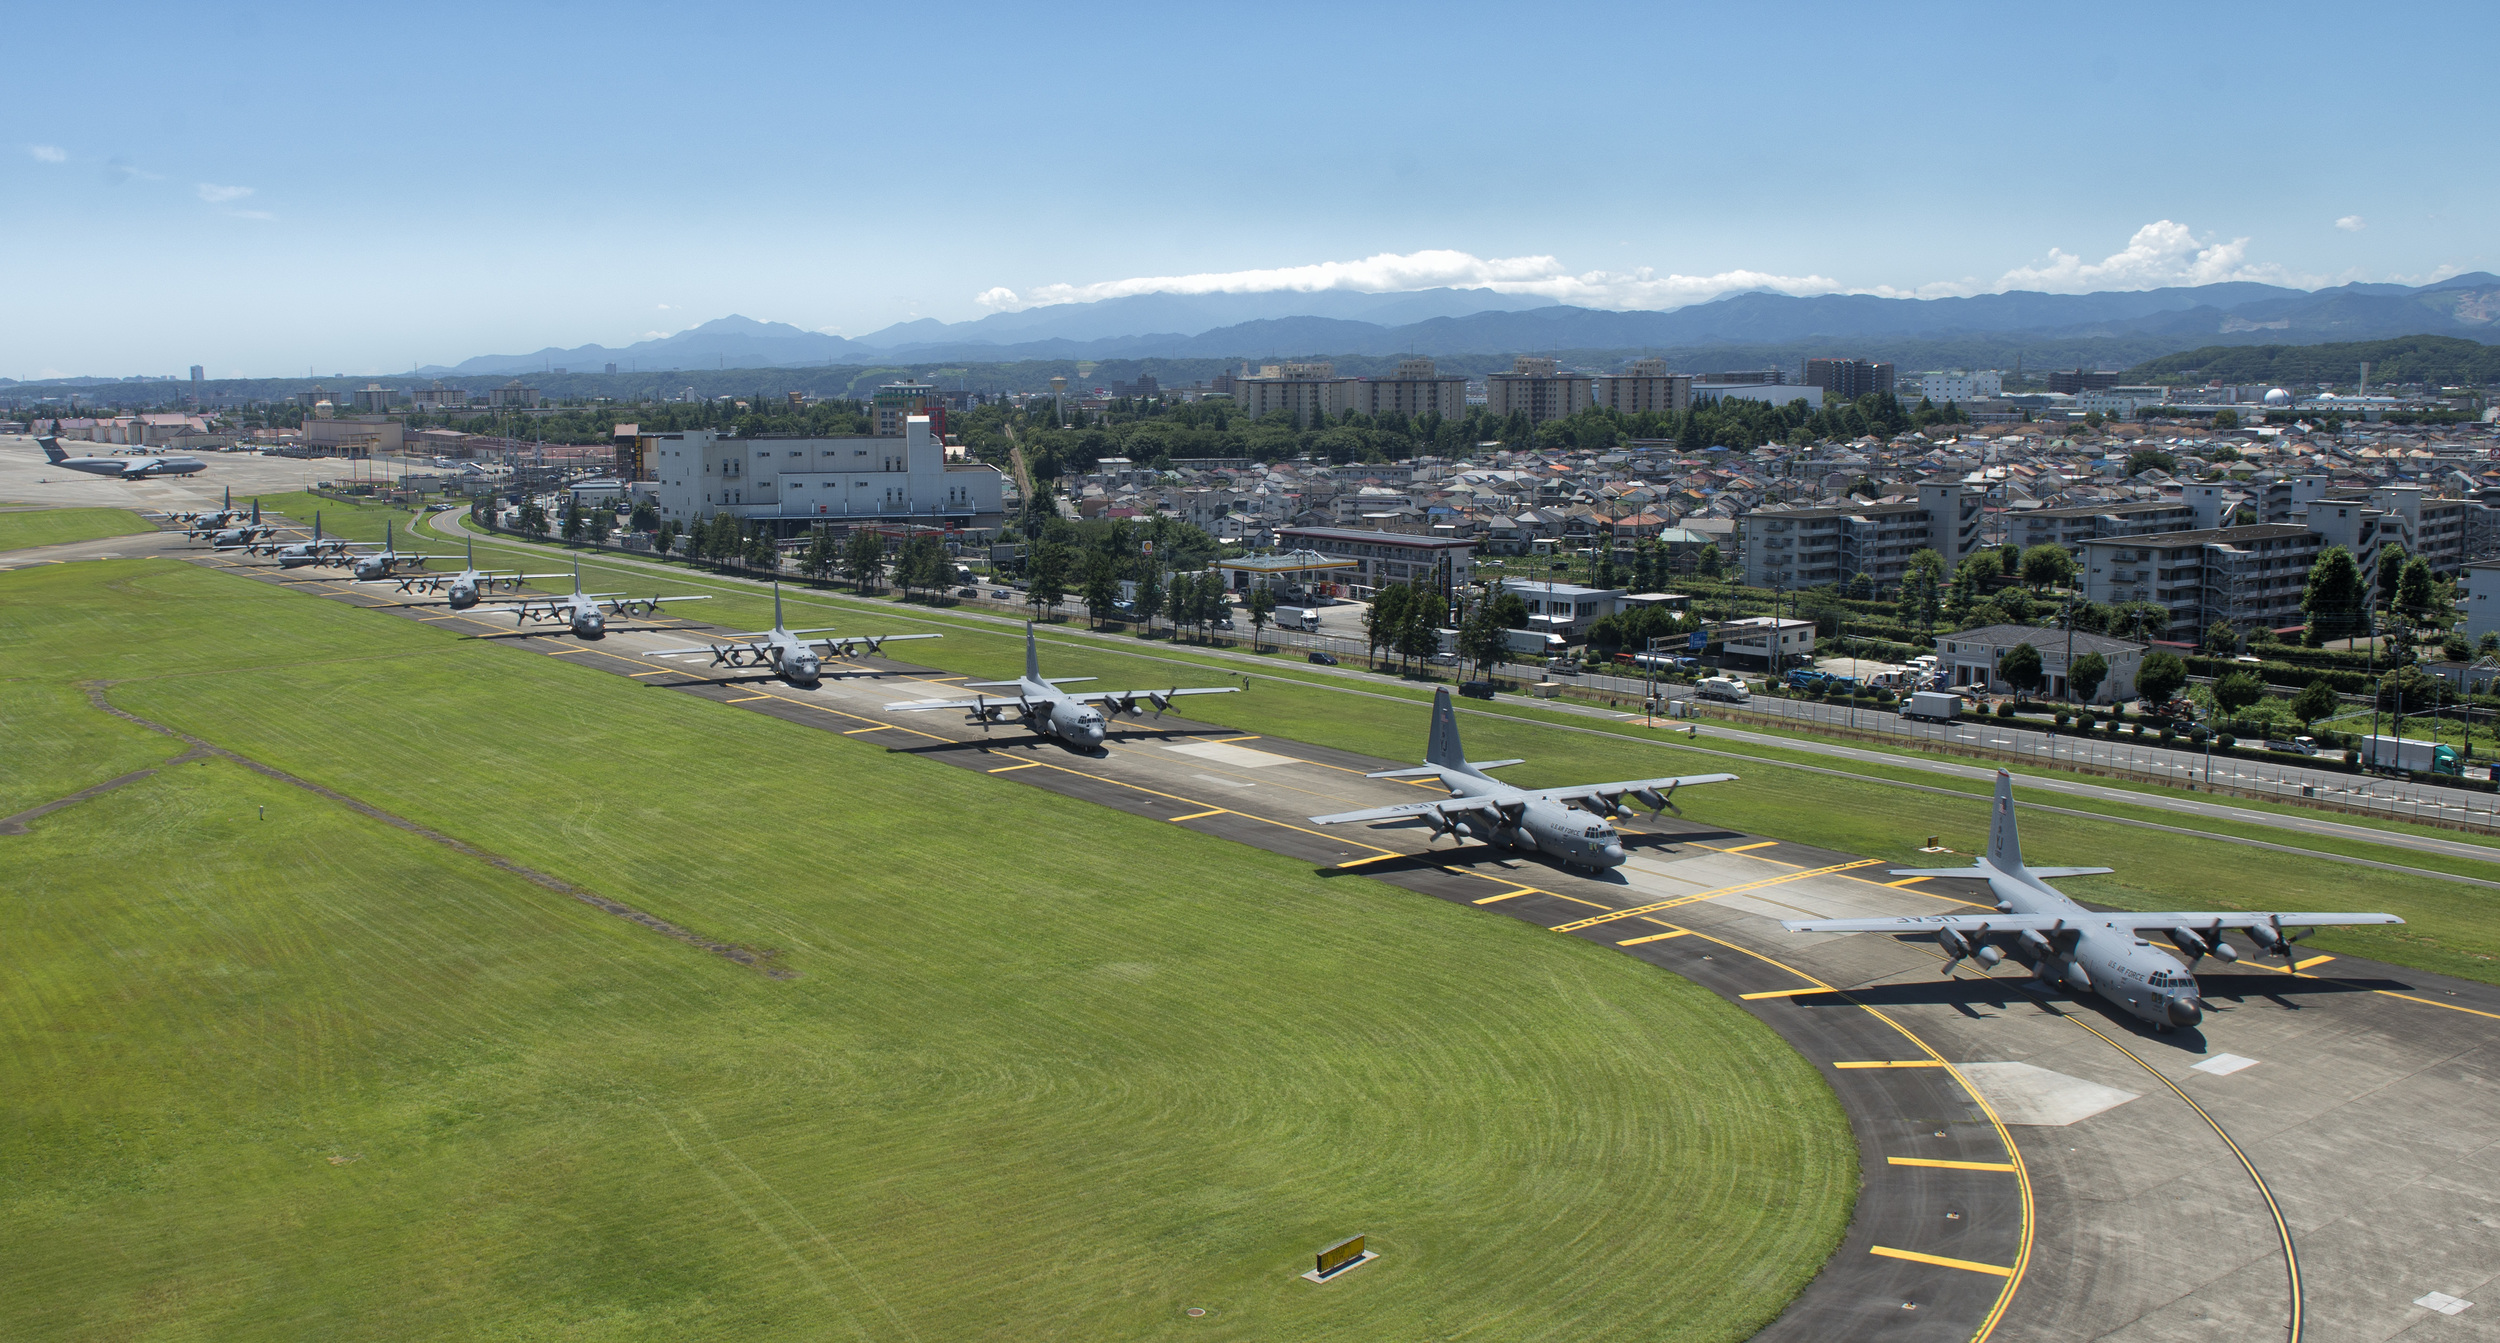 Ten C-130 Hercules aircraft taxi down a runway during a training exercise July 14, 2015, at Yokota Air Base, Japan. The exercise tested Yokota's ability to perform large-force employment and tactics. (U.S. Air Force photo by Airman 1st Class Delano Scott/Released)